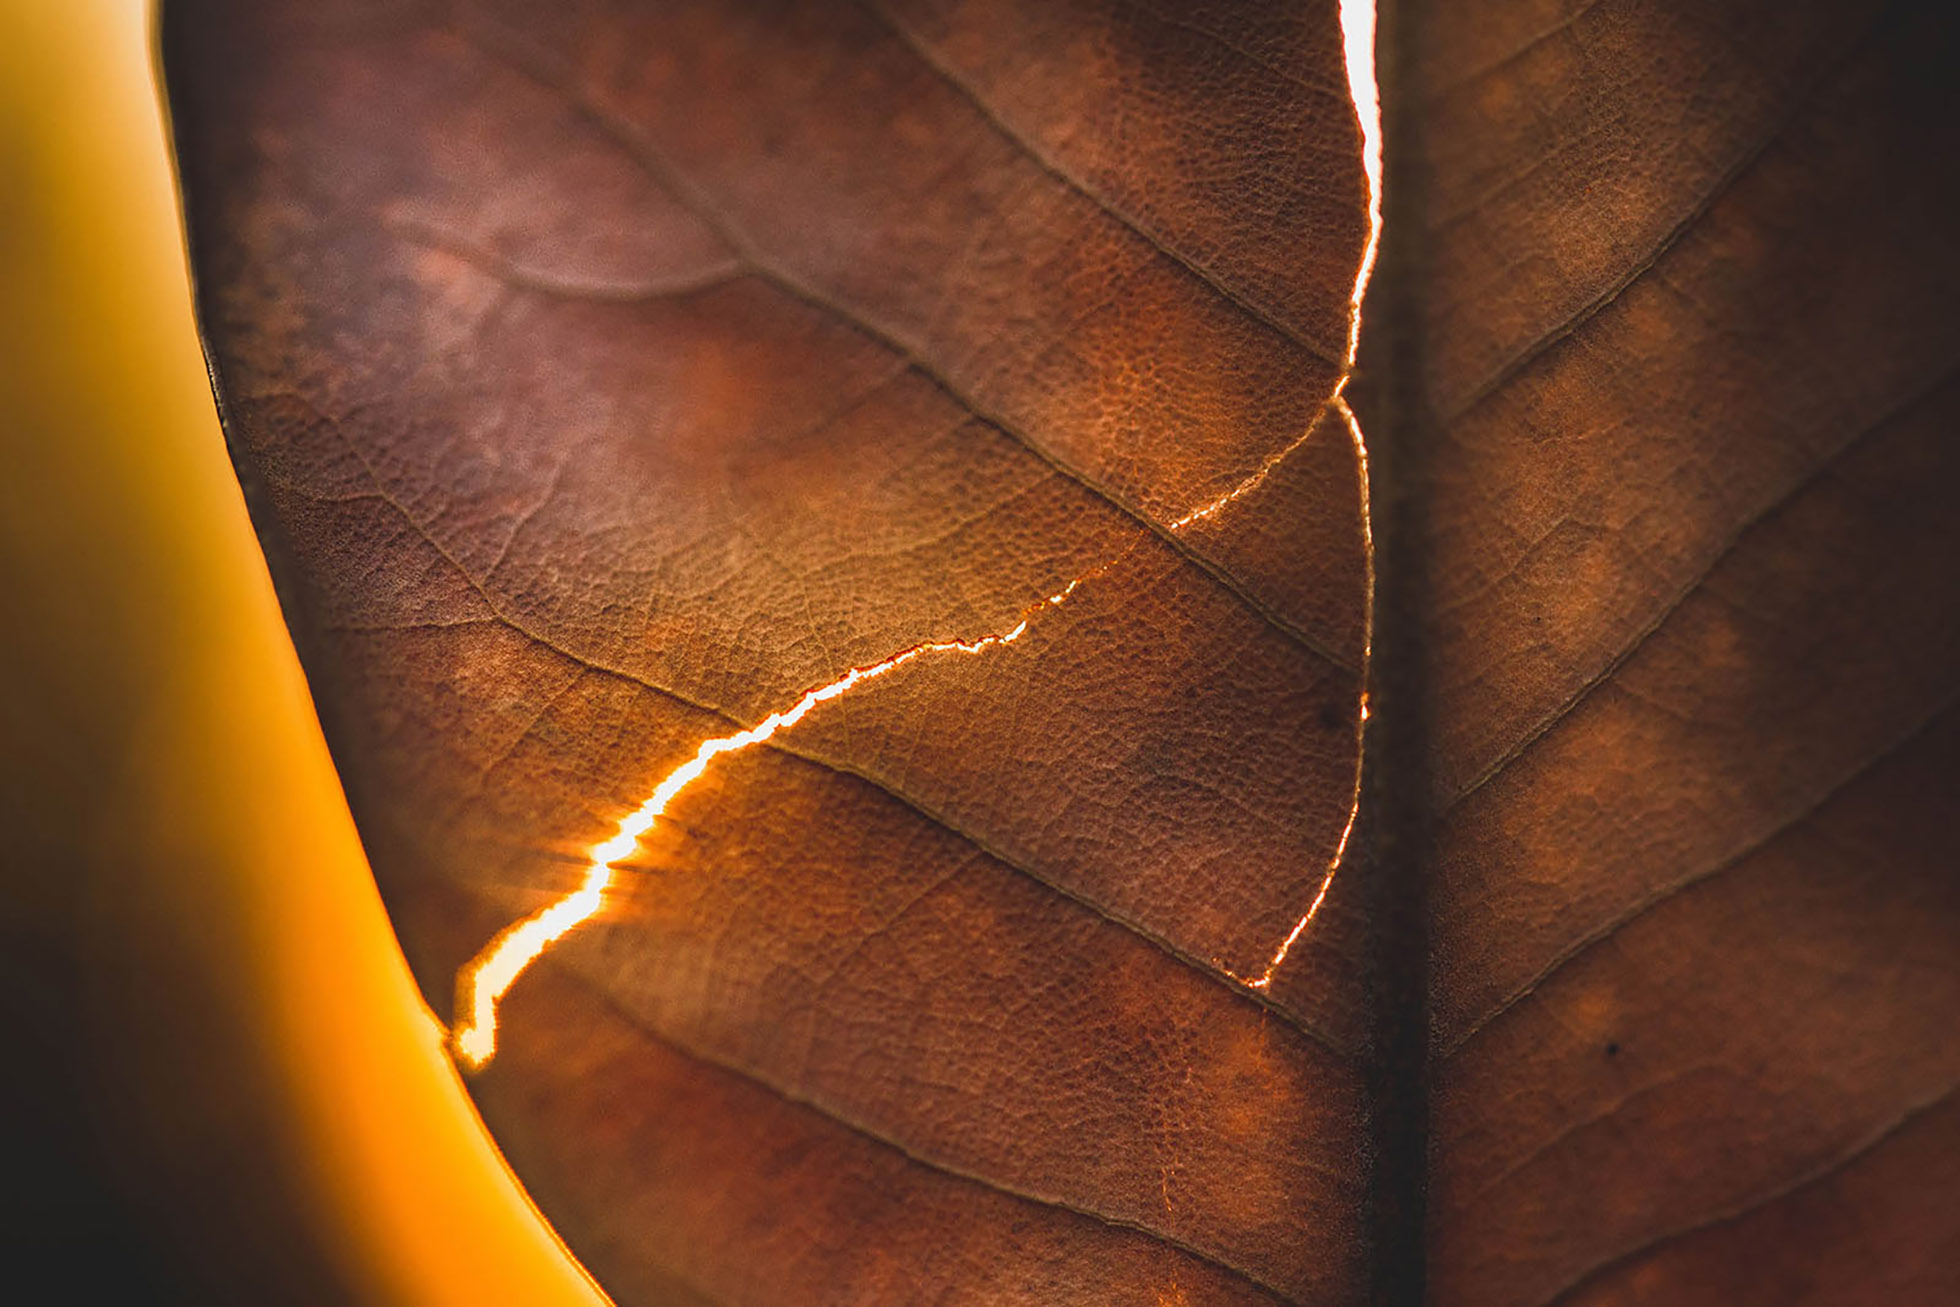 light peeking through crack in autumn leaf by jyo bhamidipati